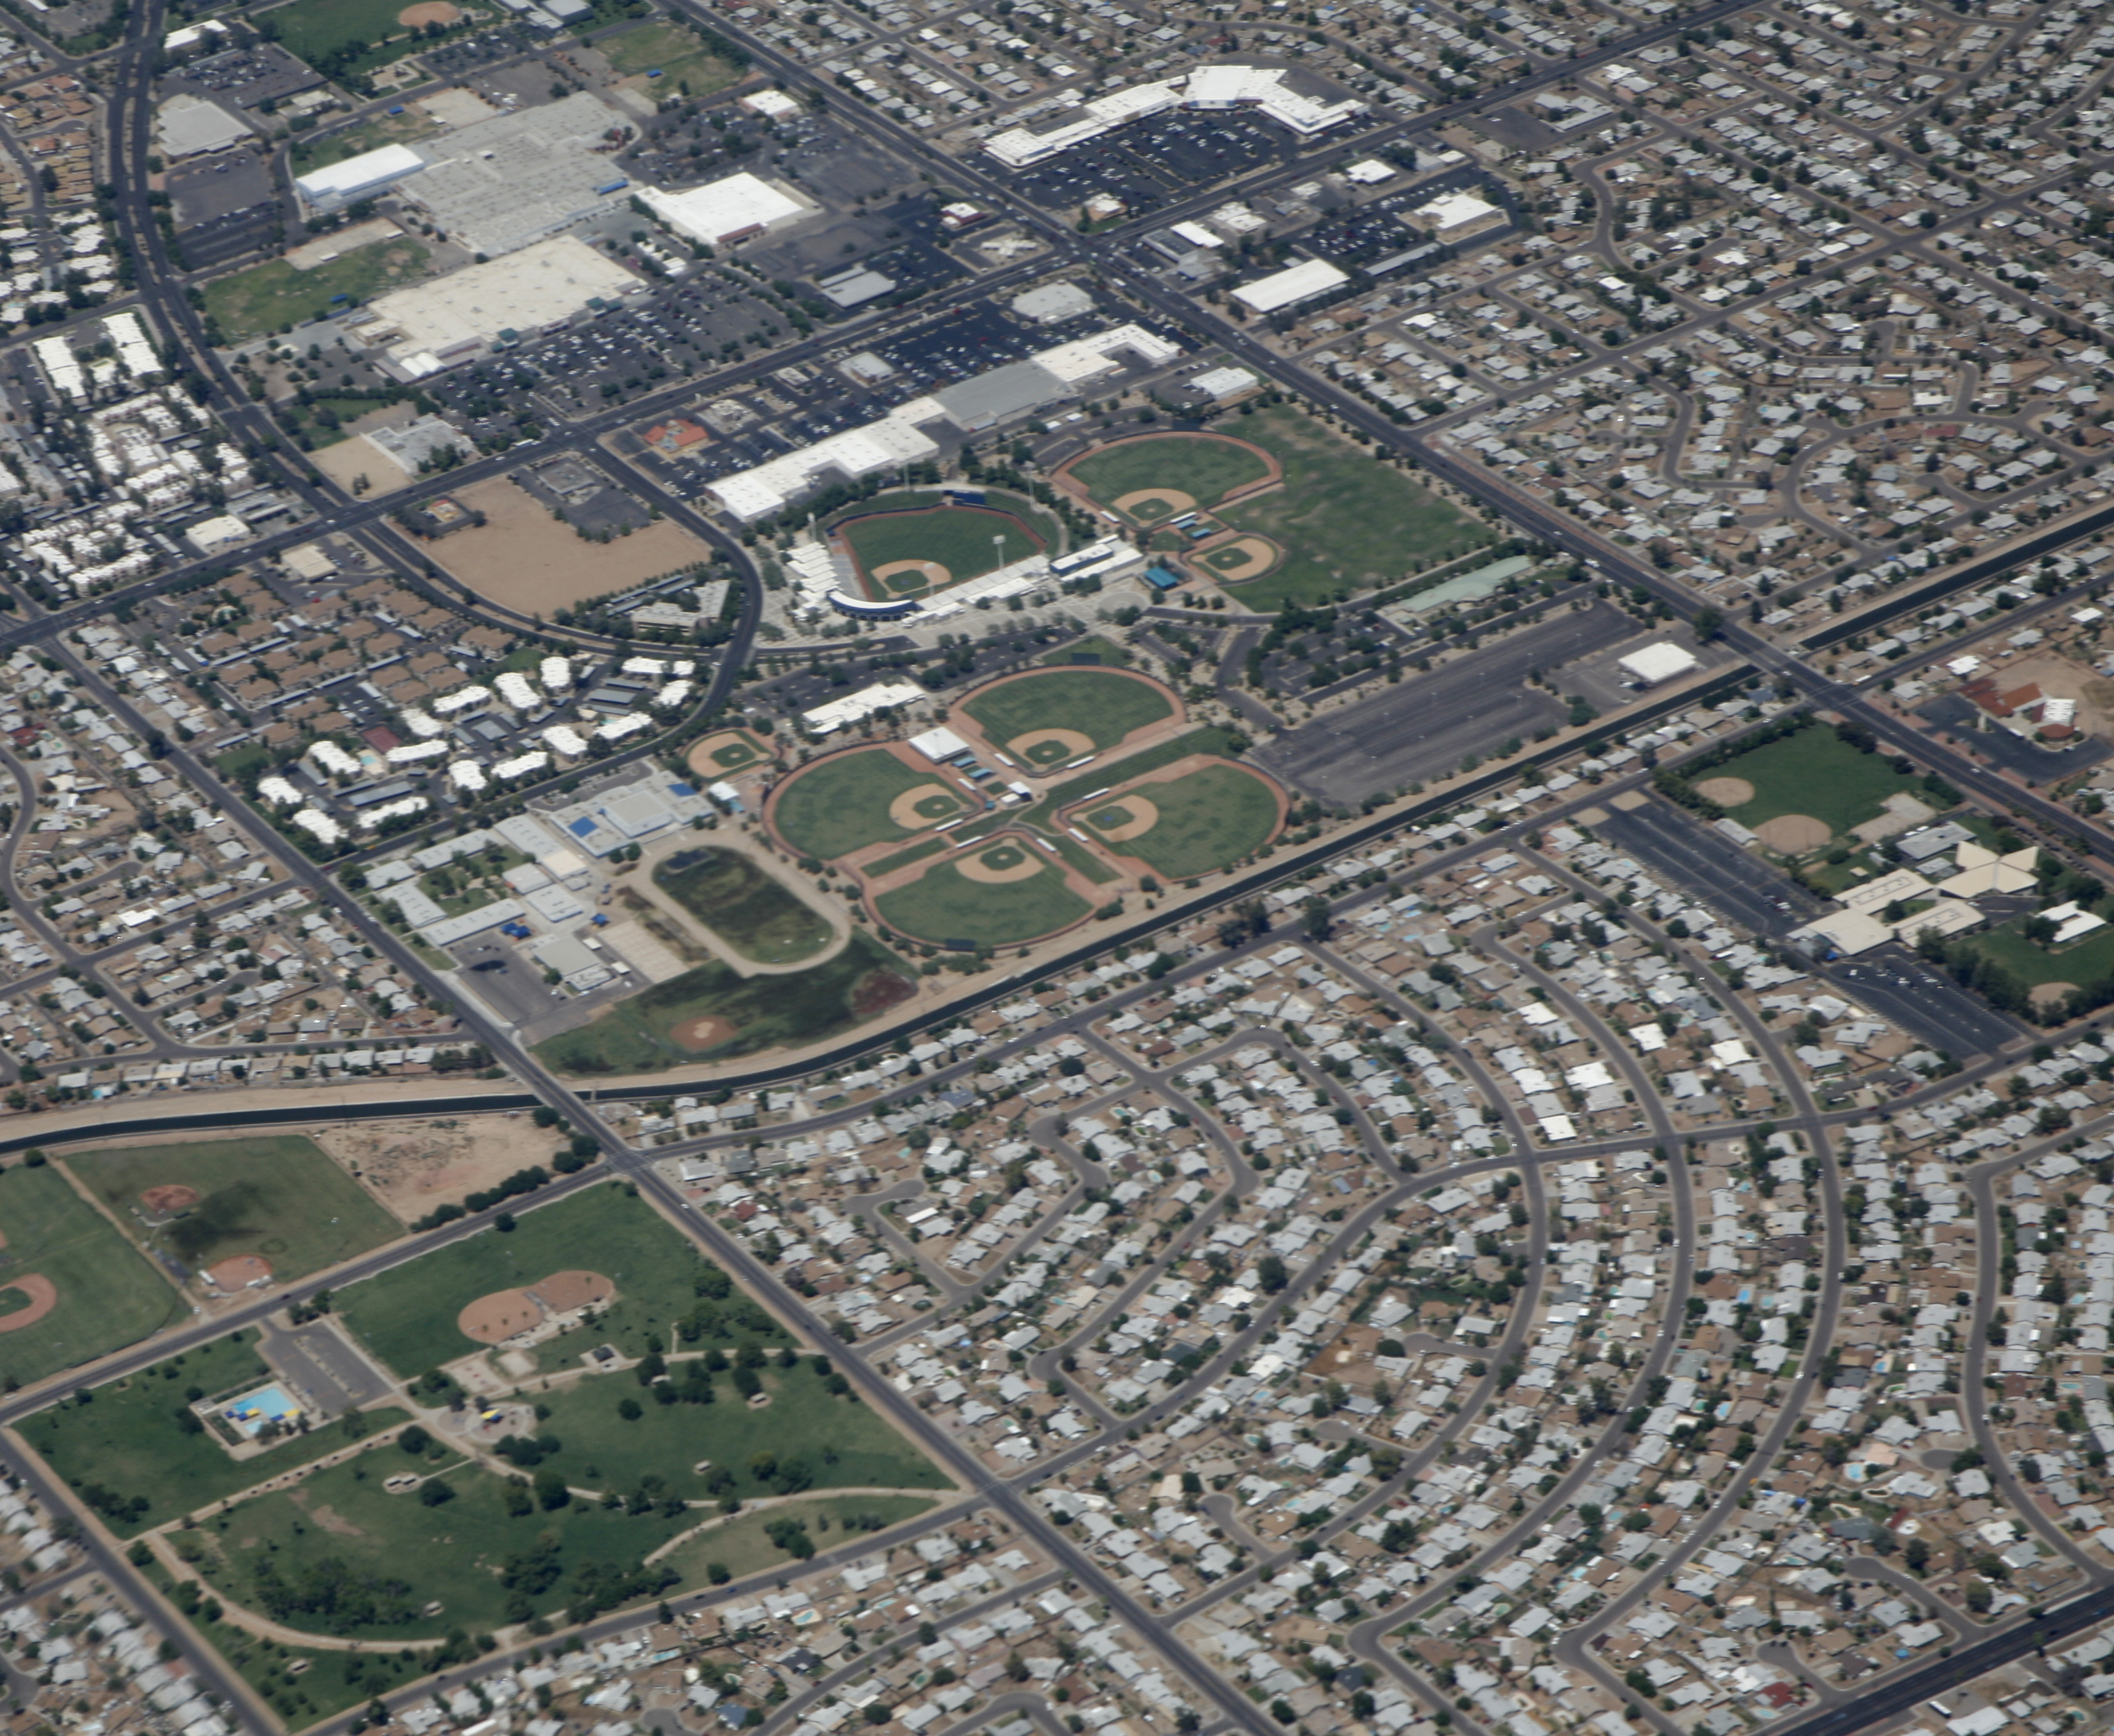 Internet Providers in Maryvale, AZ